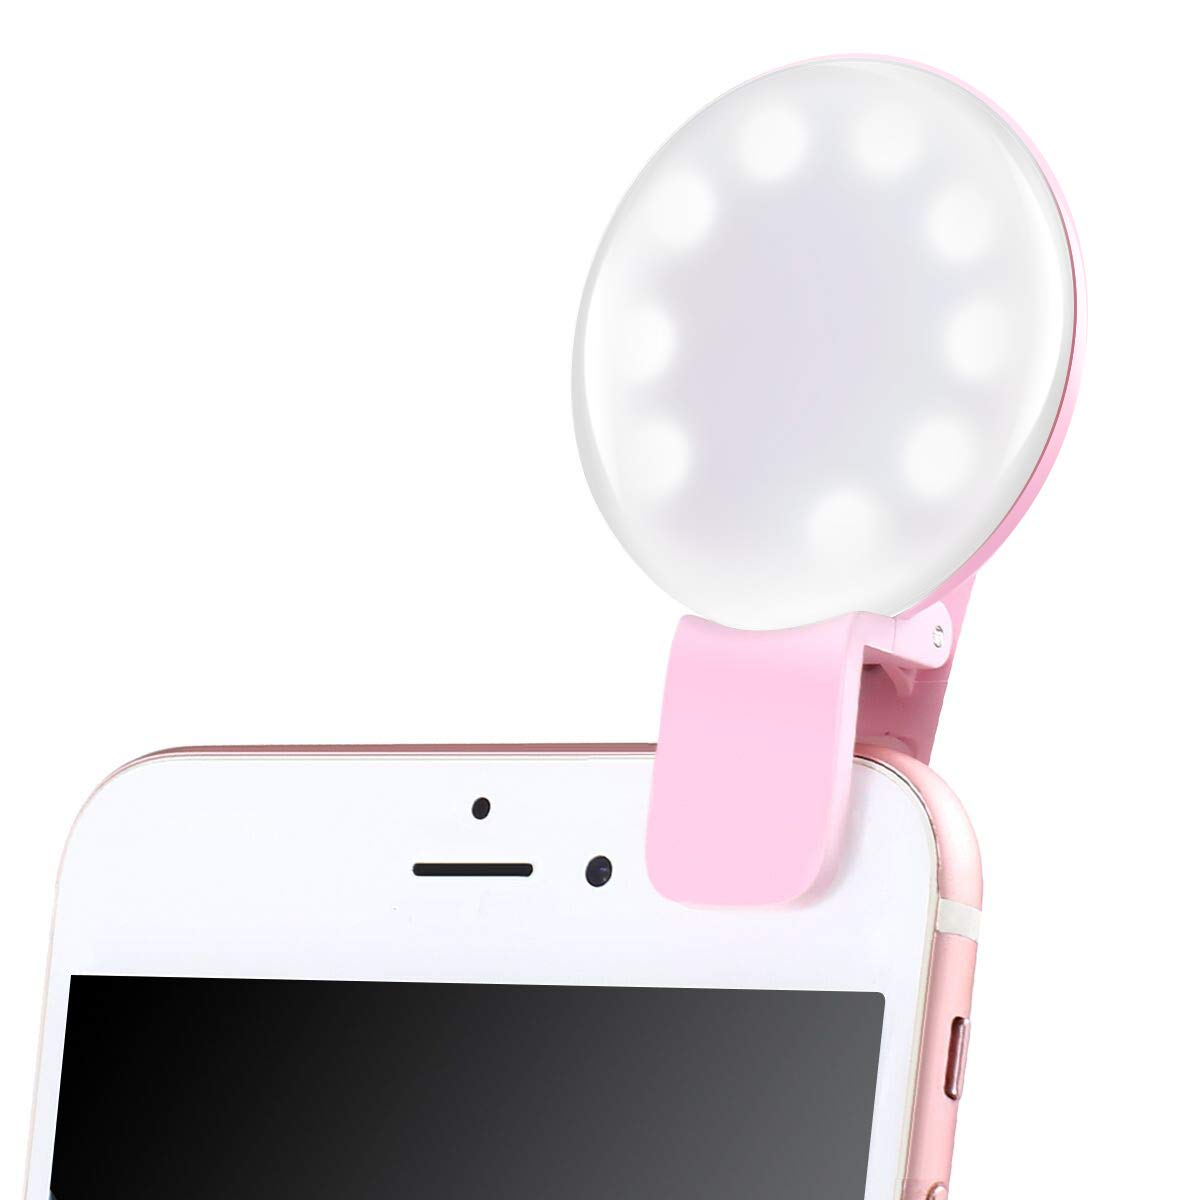 Ring Light, Selfie Ring Light,Rechargeable LED Selfie Ring Light with 3 Modes Dimmable Clip Ring Lights for Camera Phone Tablets Laptop(Rose Pink